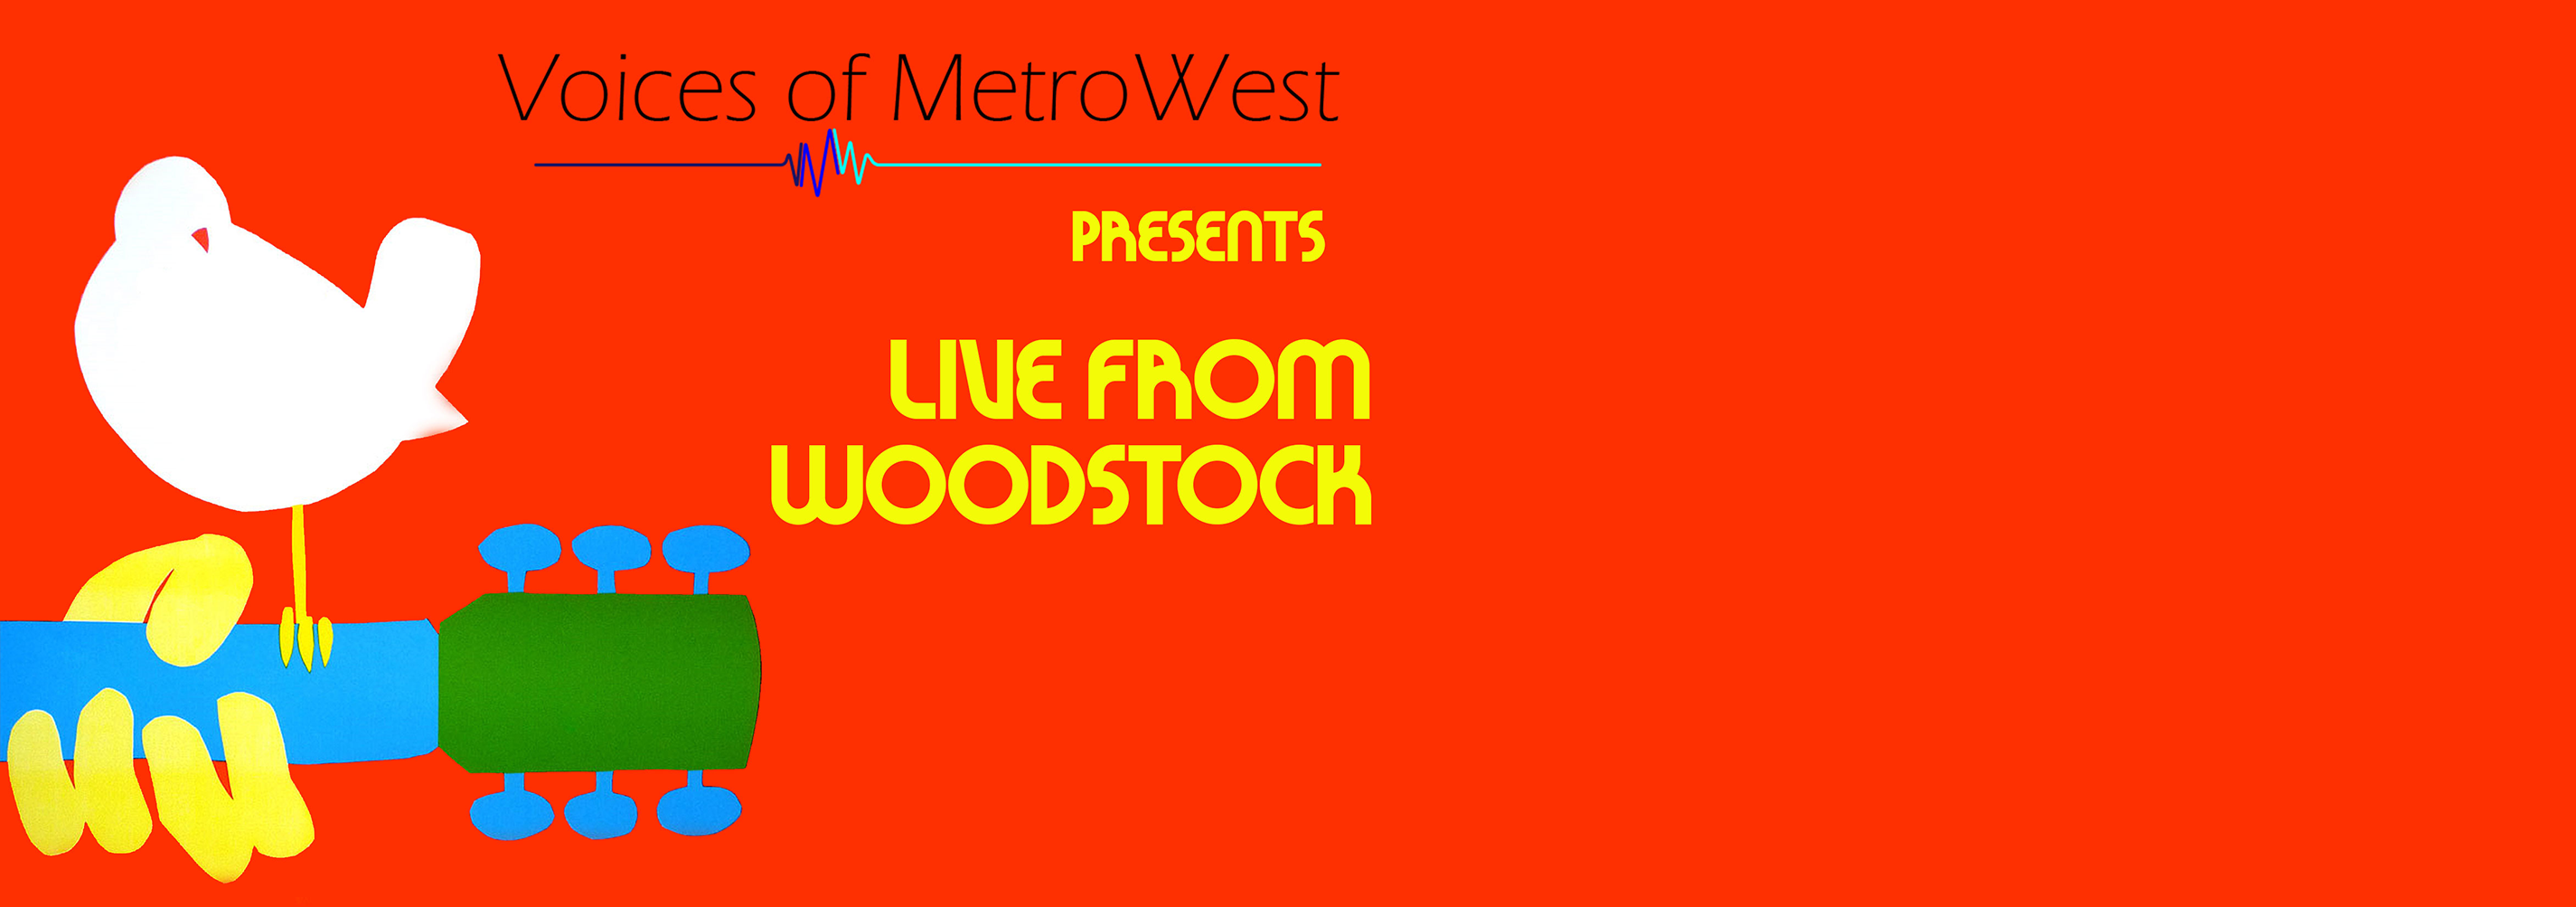 Join Voices of MetroWest as we honor the 50th anniversary of Woodstock!